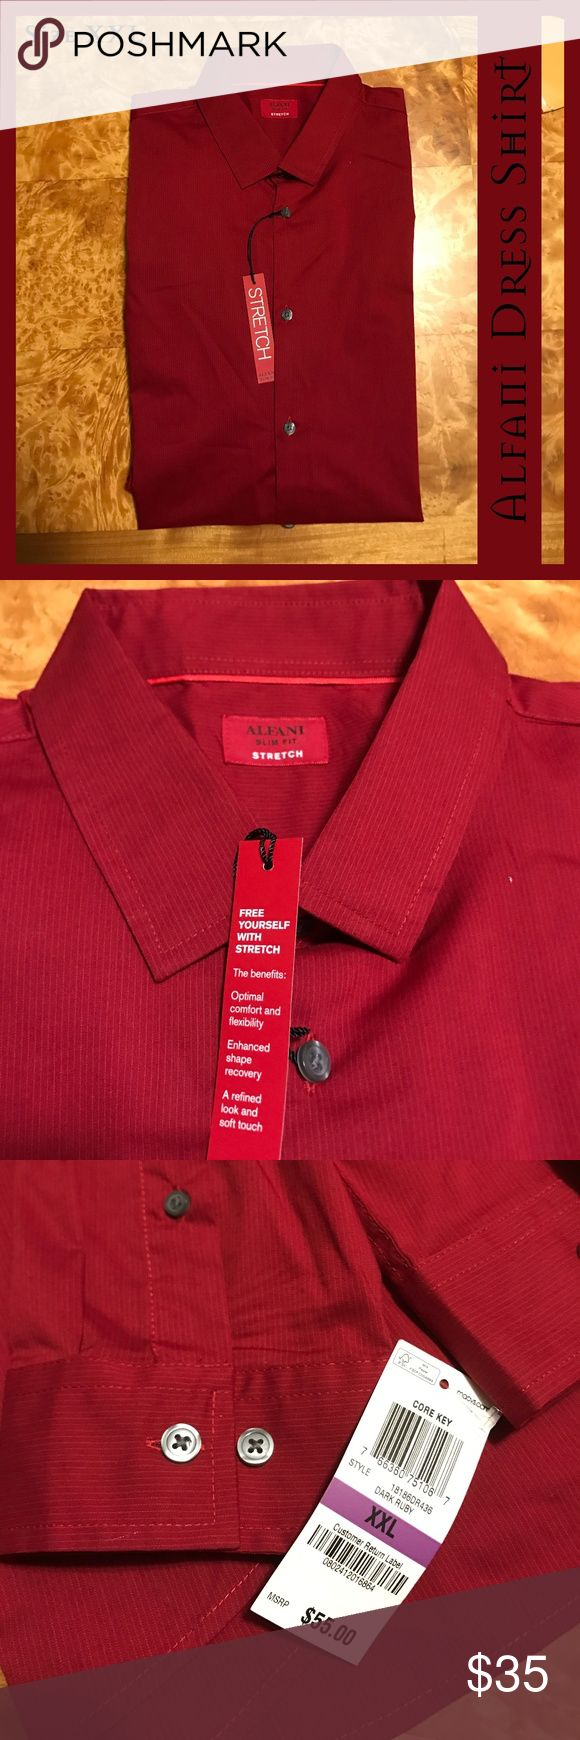 Alfani Mens Red Dress Shirt Stretch NWT XXL This is a brand new Alfani dress shirt from Macy's. It has a faint pinstripe running vertical and a little stretch to it to provide a more comfortable fit.  From a smoke-free and happy-to-bundle closet.   No trades or transactions outside of Poshmark. [N349] Alfani Shirts Dress Shirts